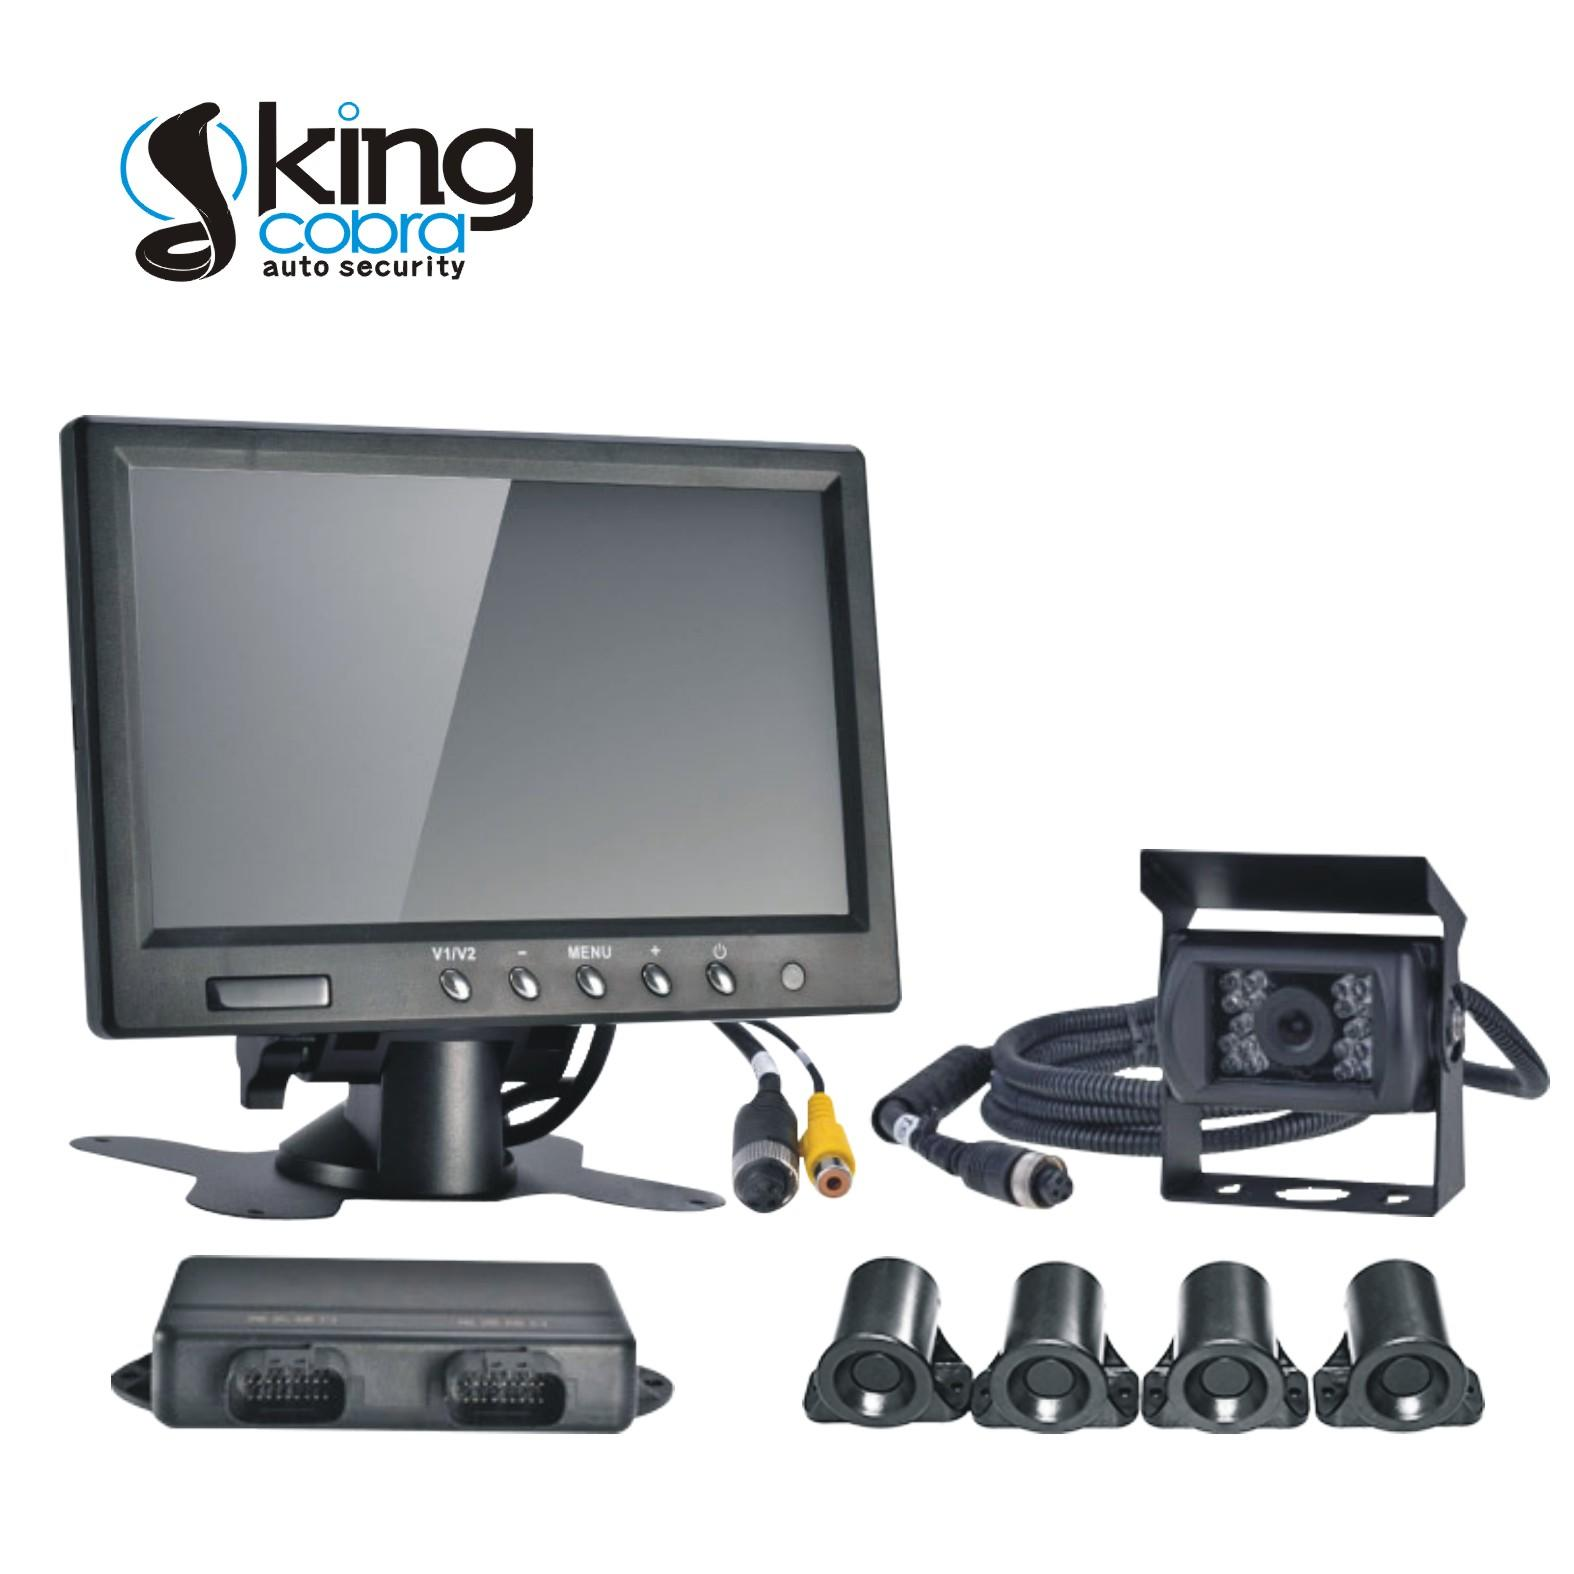 parking sensor kit hot sale online Kingcobra